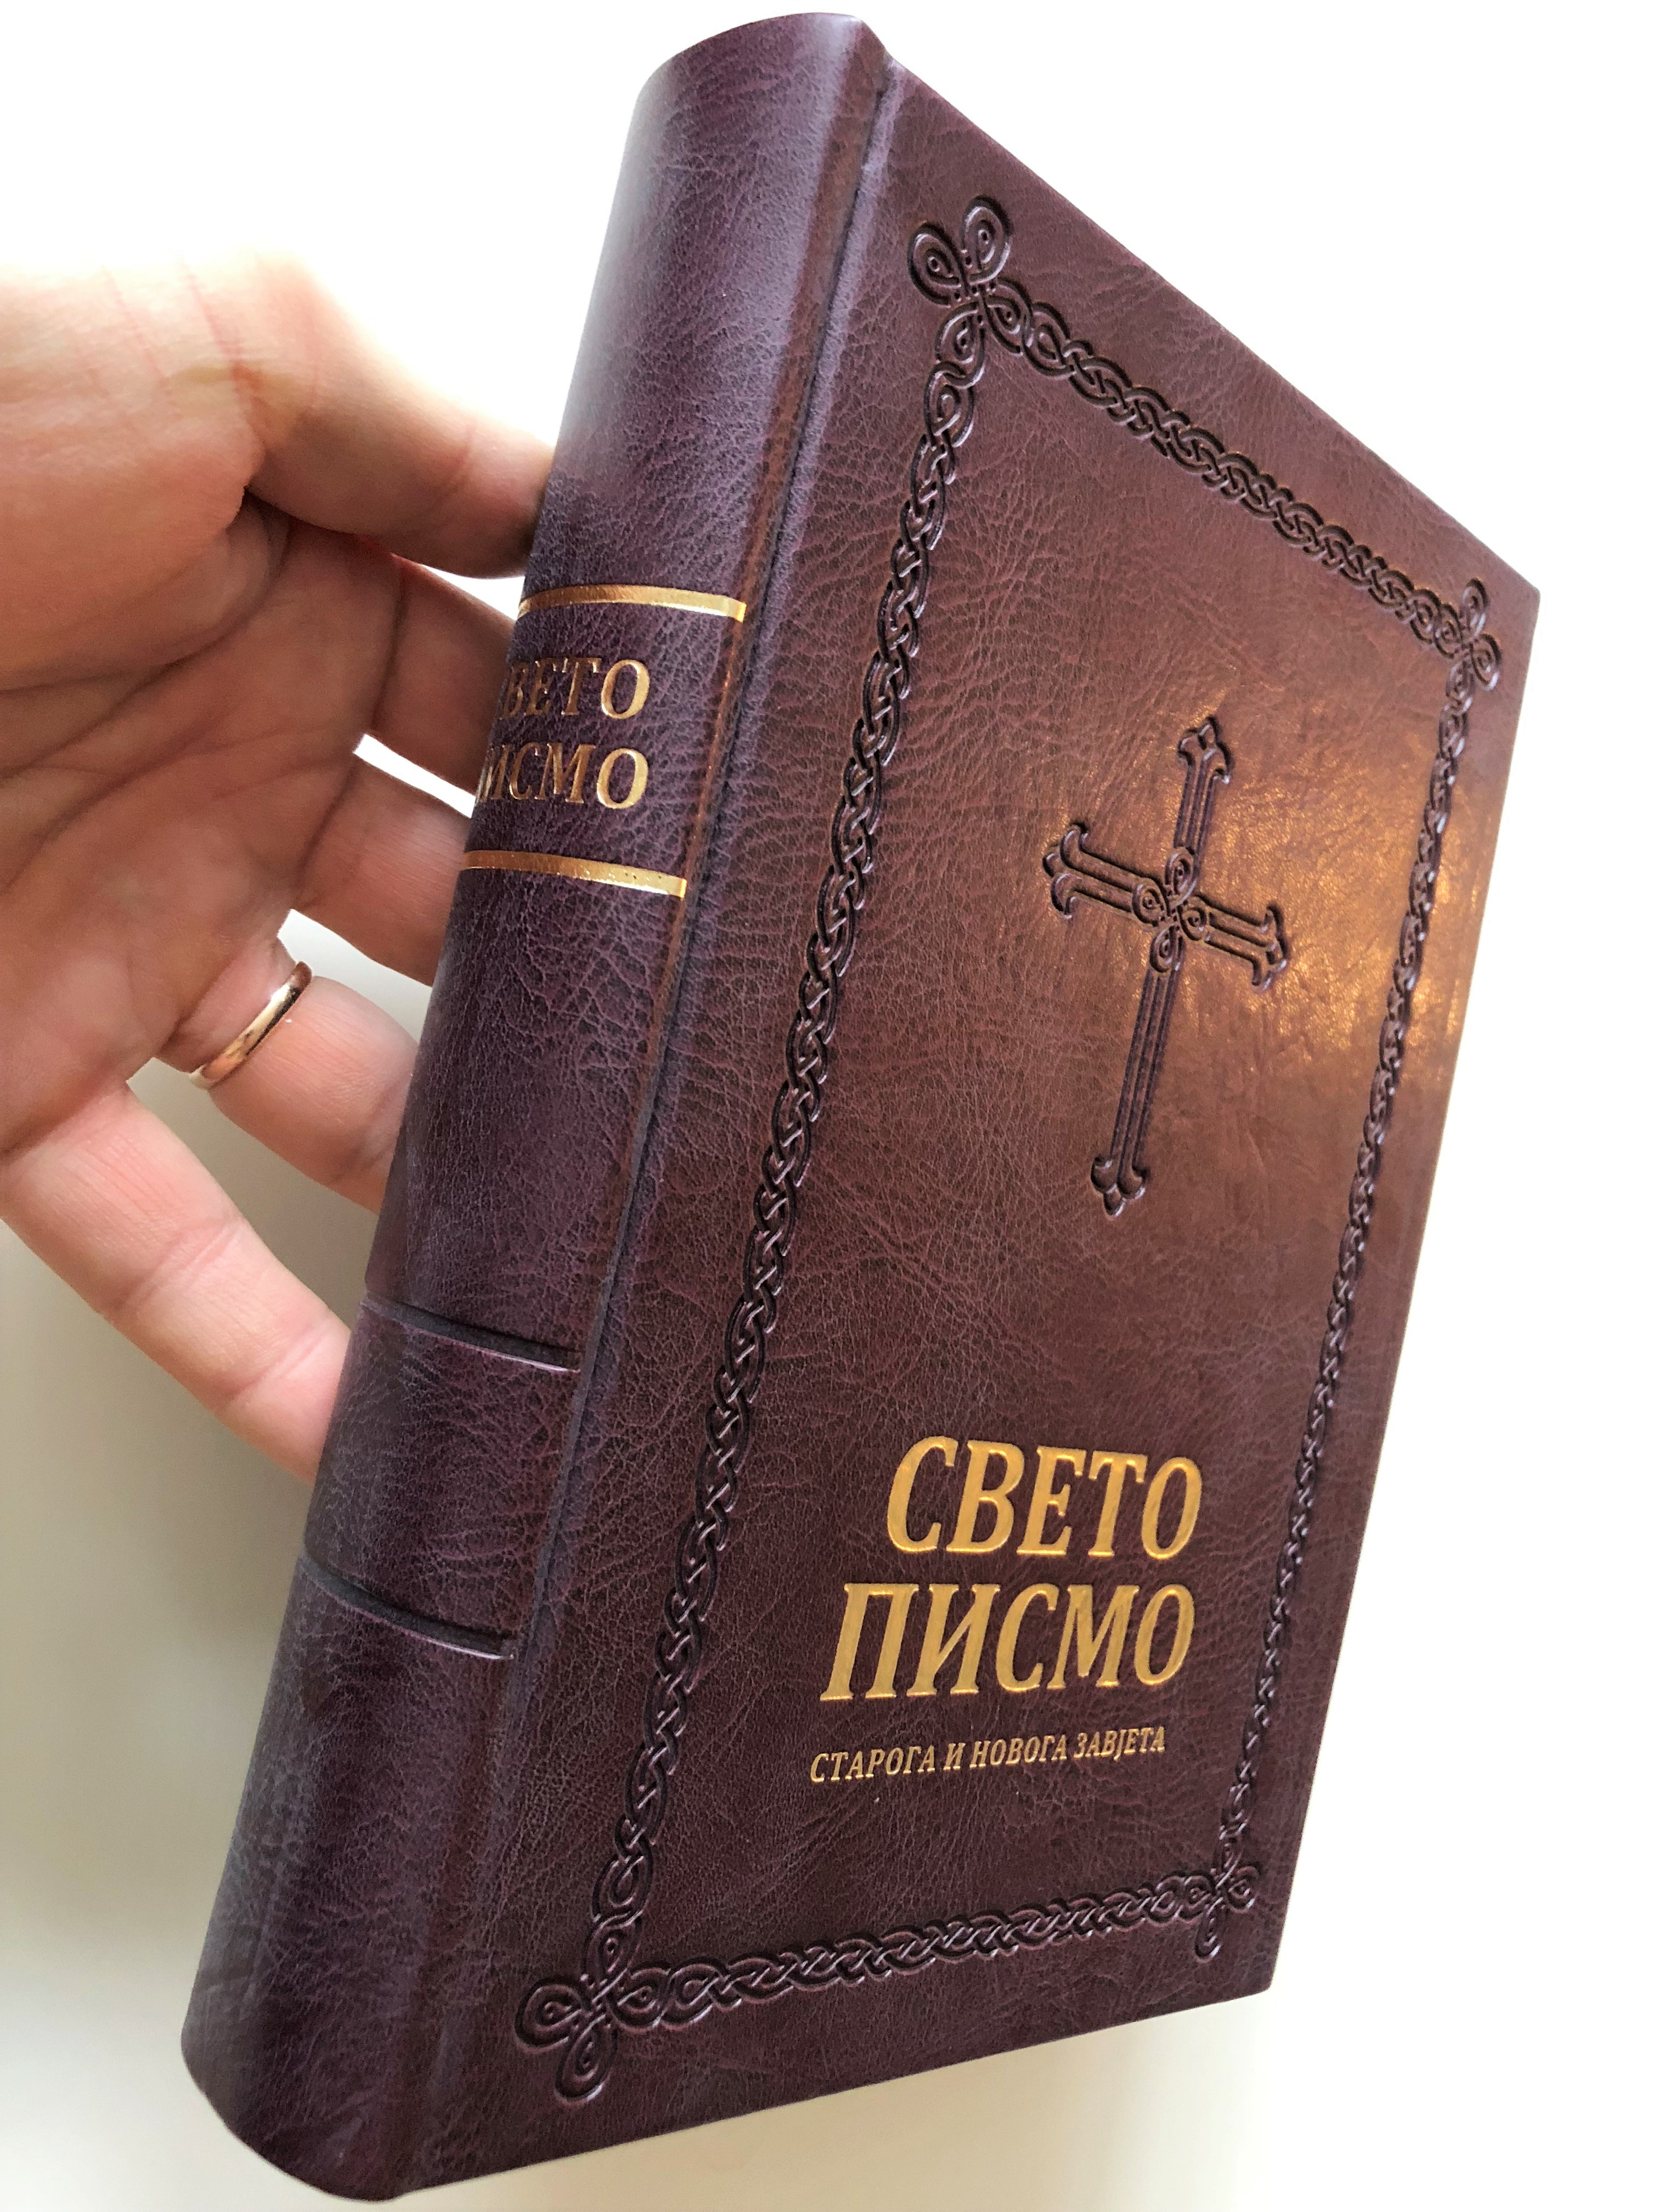 serbian-family-bible-ss-6-.jpg